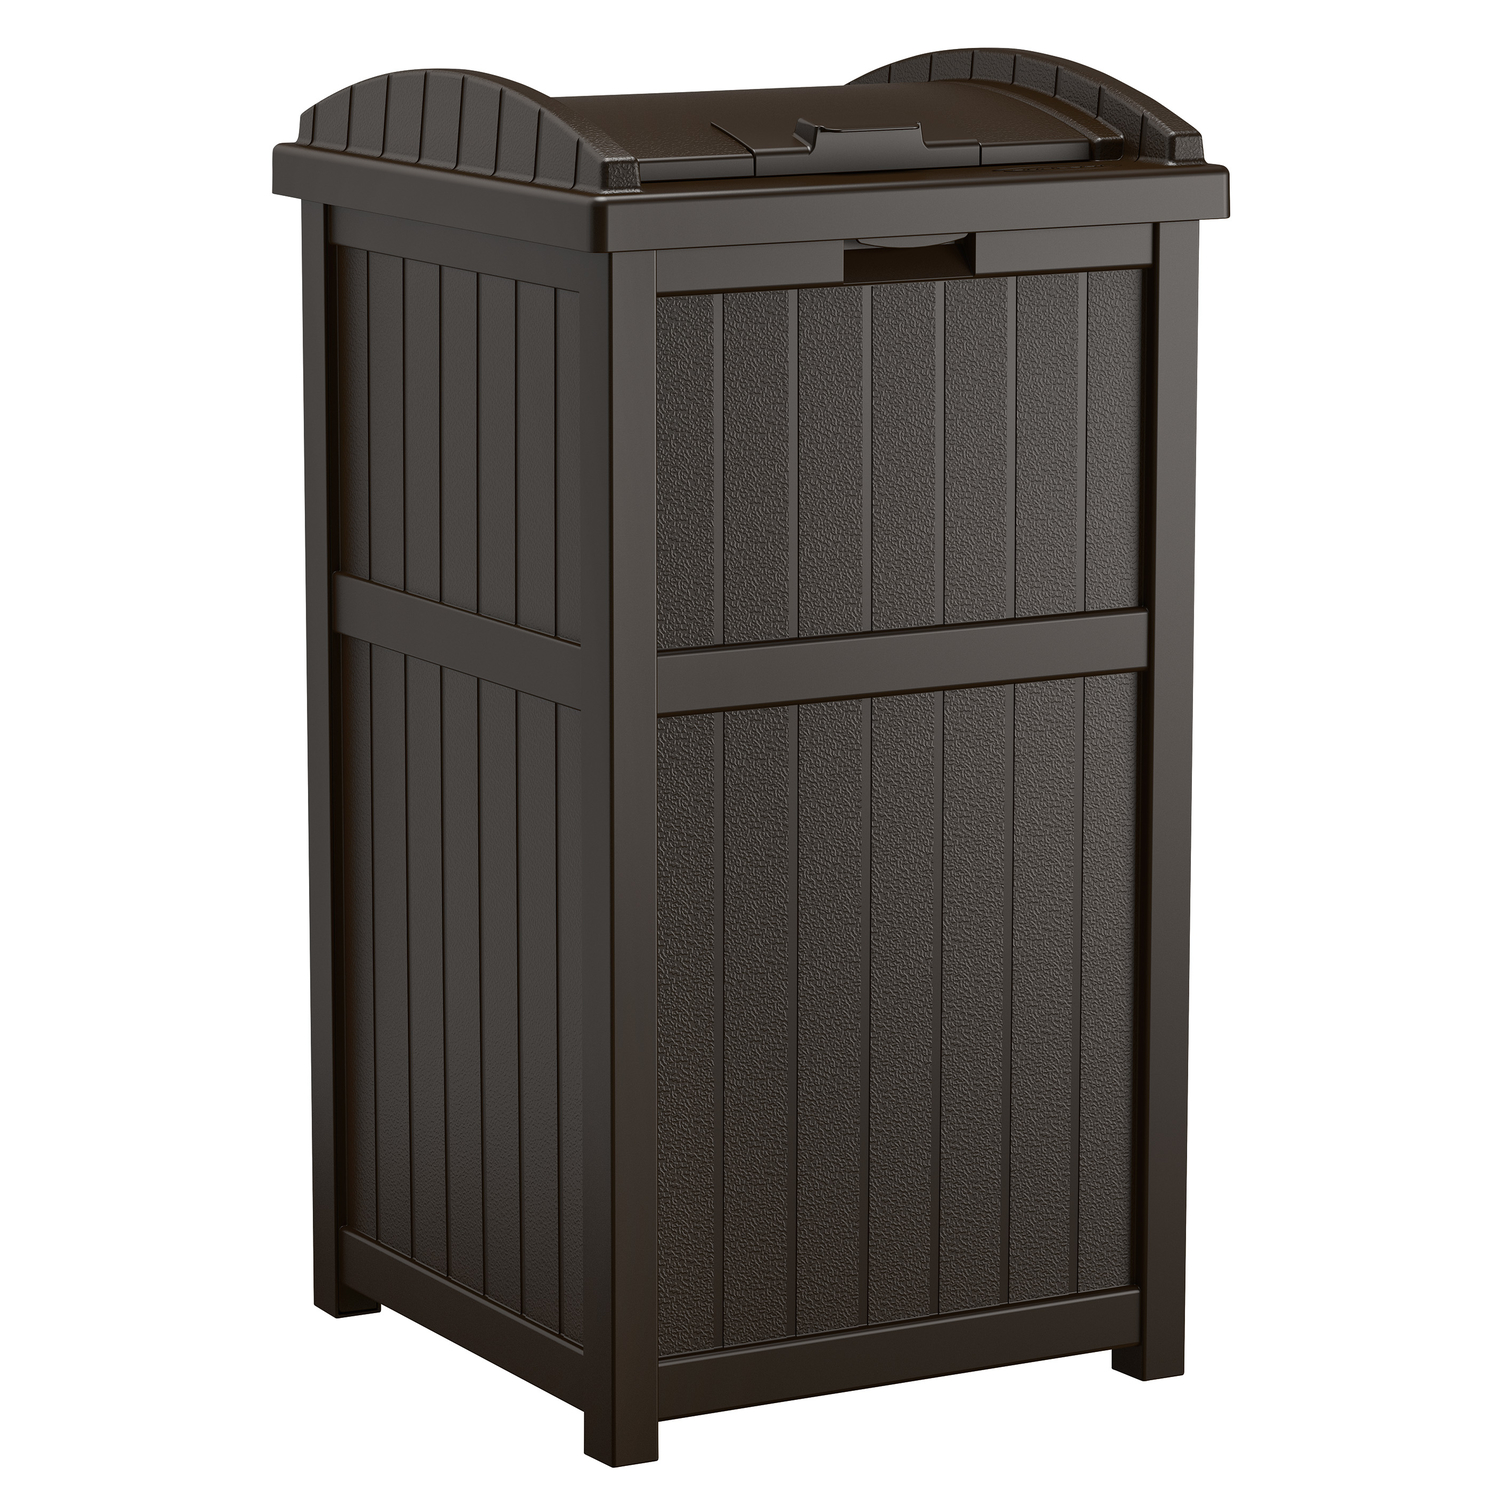 outdoor trash can. Suncast Trash Hideaway 30 Gal. Resin Wicker Garbage Can Outdoor